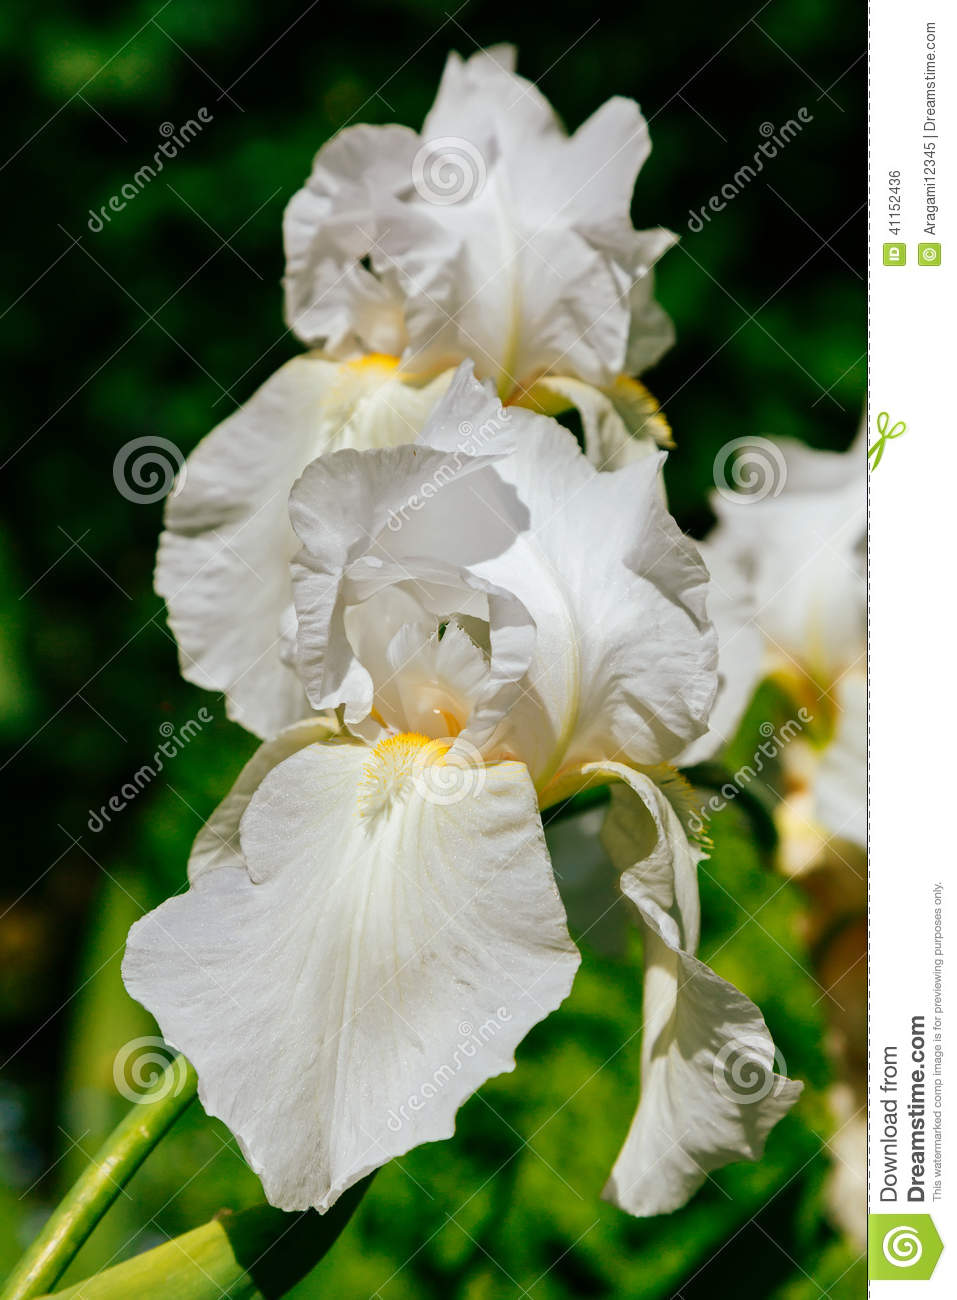 fleurs blanches d 39 iris dans le jardin d 39 t photo stock. Black Bedroom Furniture Sets. Home Design Ideas